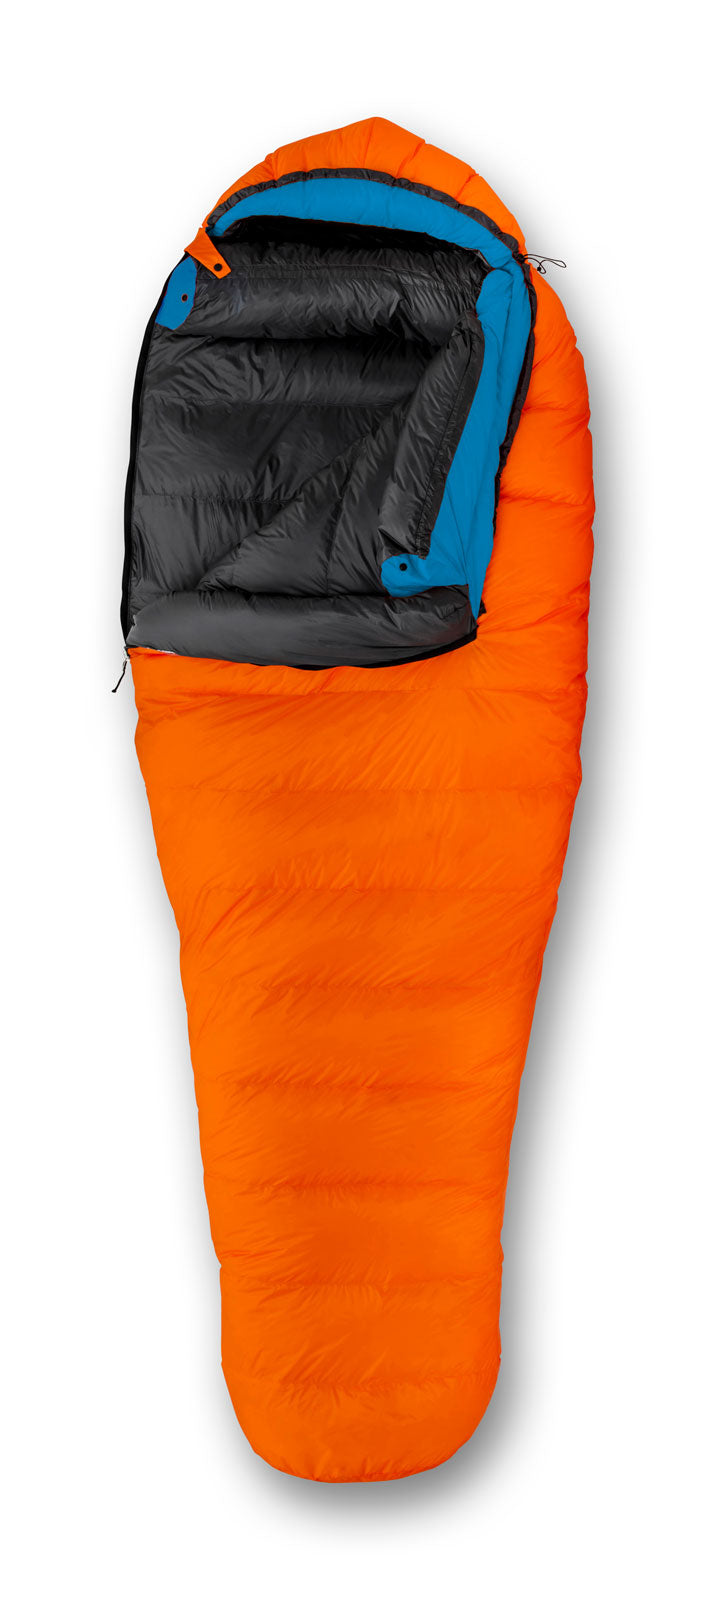 Feathered Friends Petrel 10 UL Women's Down Sleeping Bag Tangerine